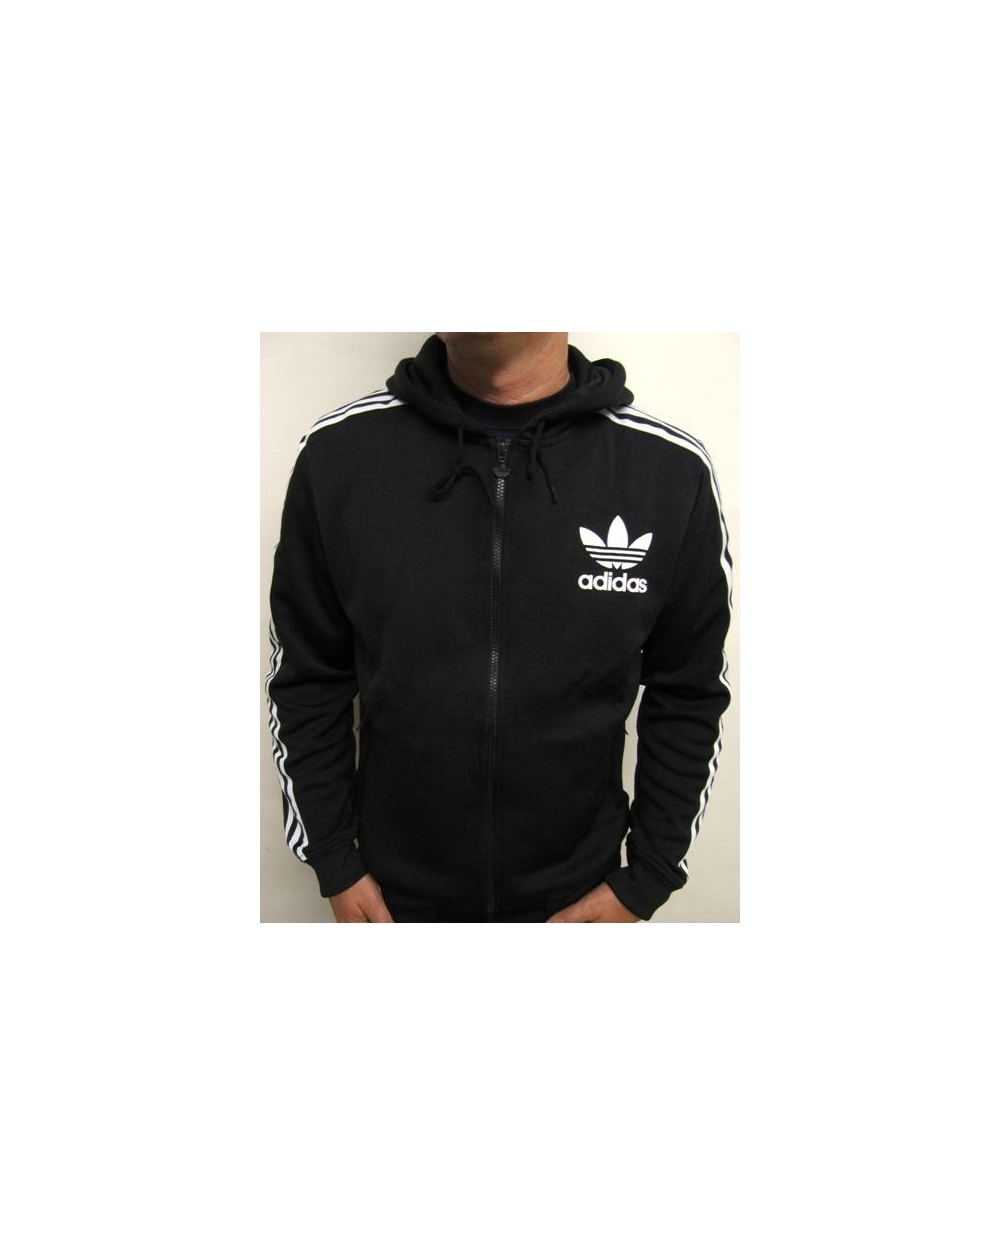 Adidas Originals Flock Zip Hoodie Black